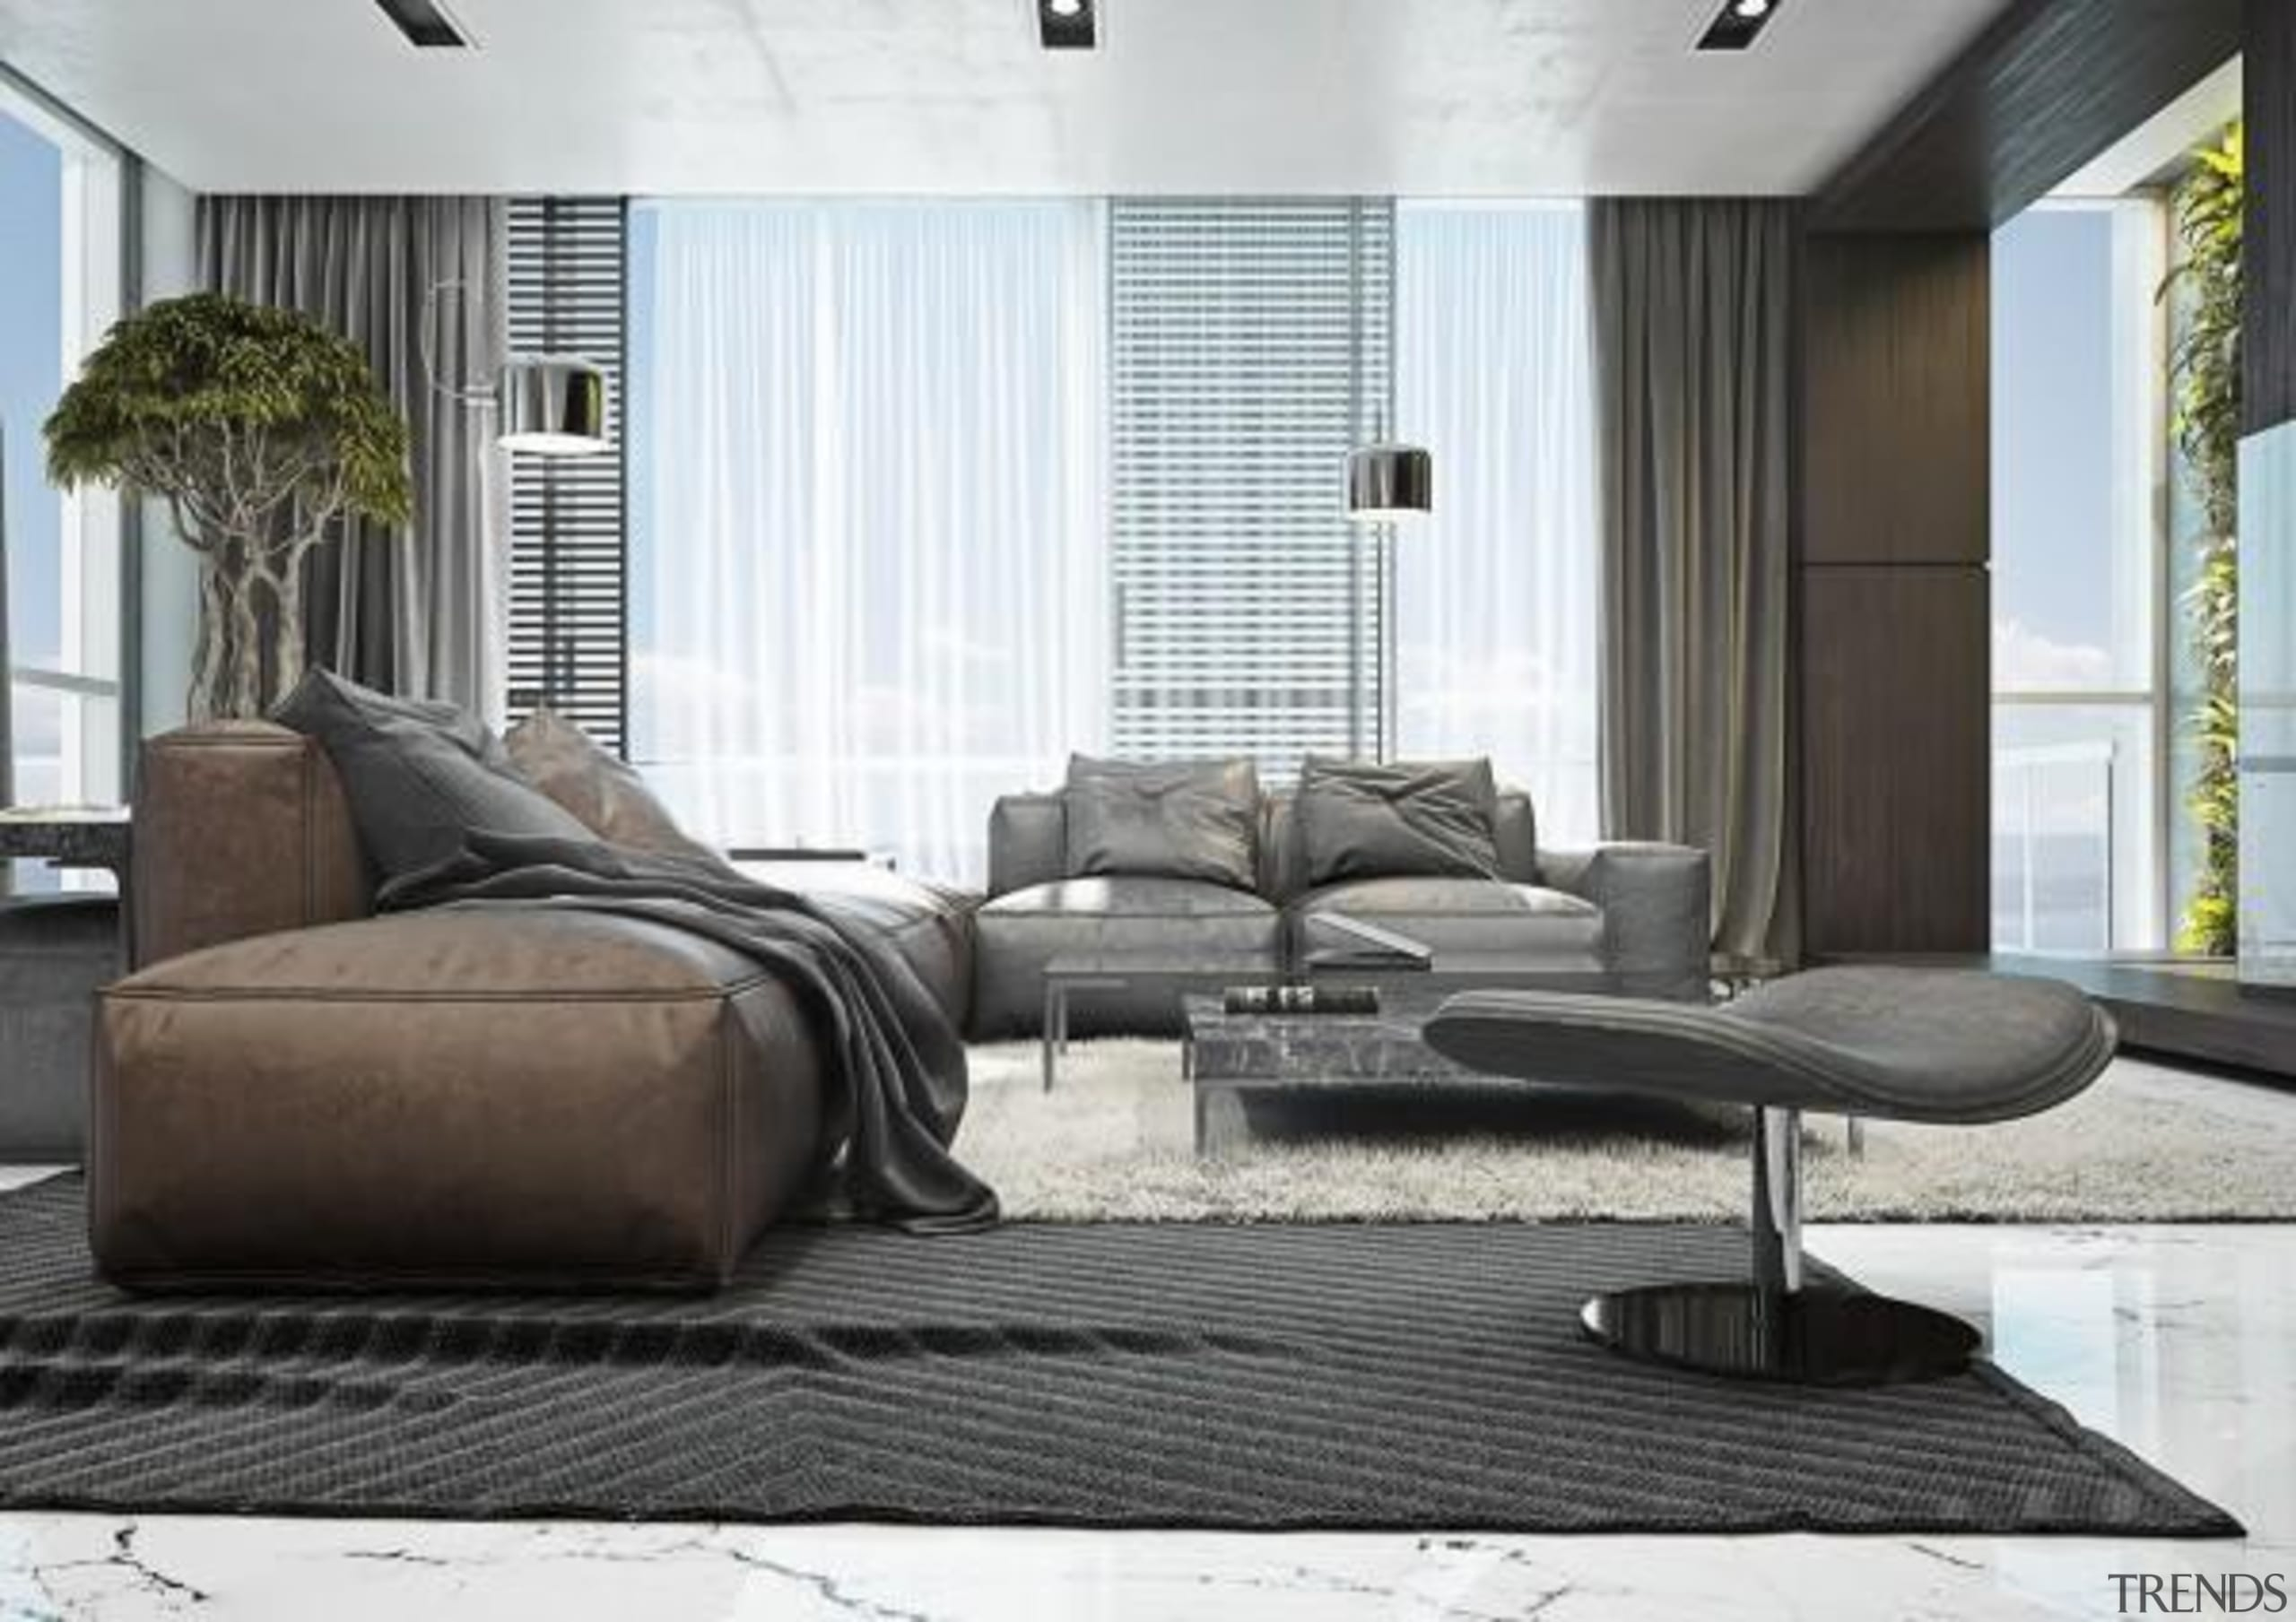 dark design ideas - Masculine Apartments - chair chair, couch, floor, furniture, home, interior design, living room, loveseat, table, window, white, black, gray